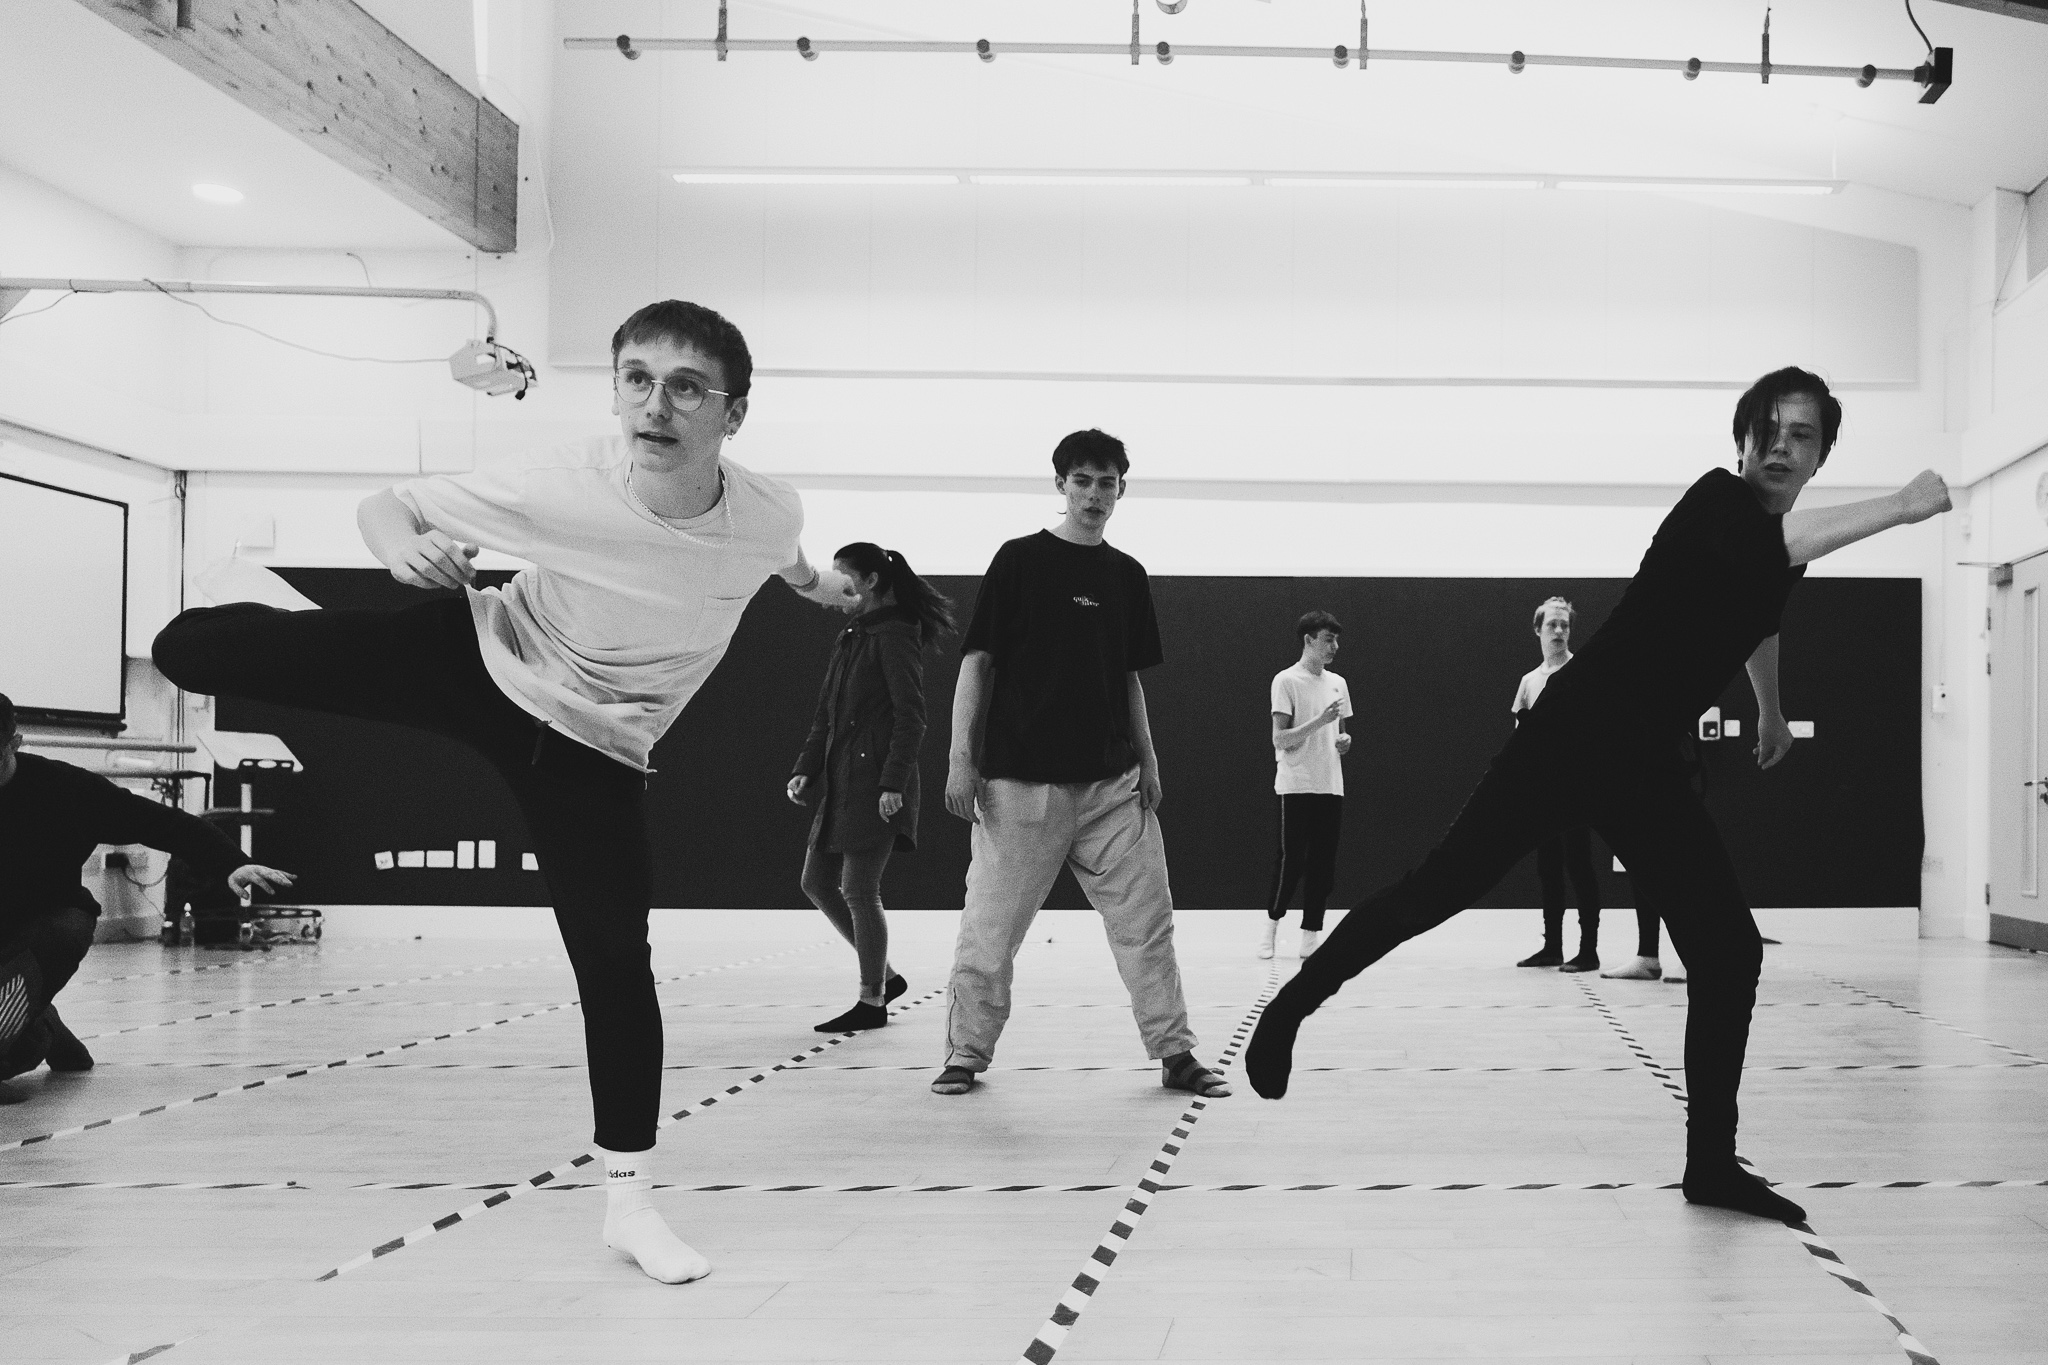 A group of teenage boys dance in a rehearsal studio. They are swinging their legs our while another looks on from behind